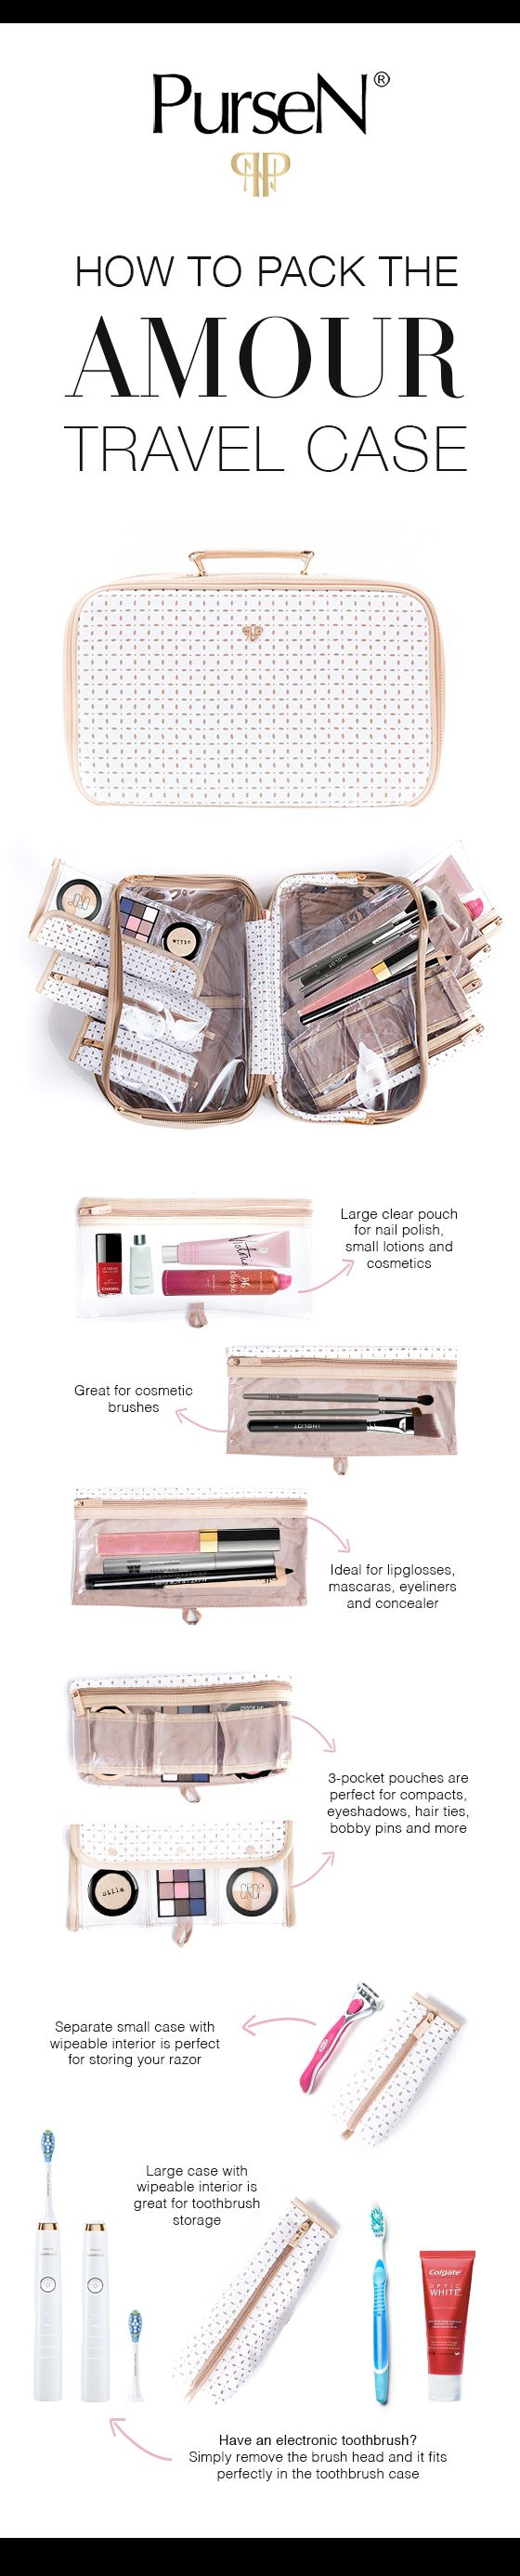 The best toiletry bag organizer by PurseN- the Amour Travel Case. #cosmeticbag #makeupbag